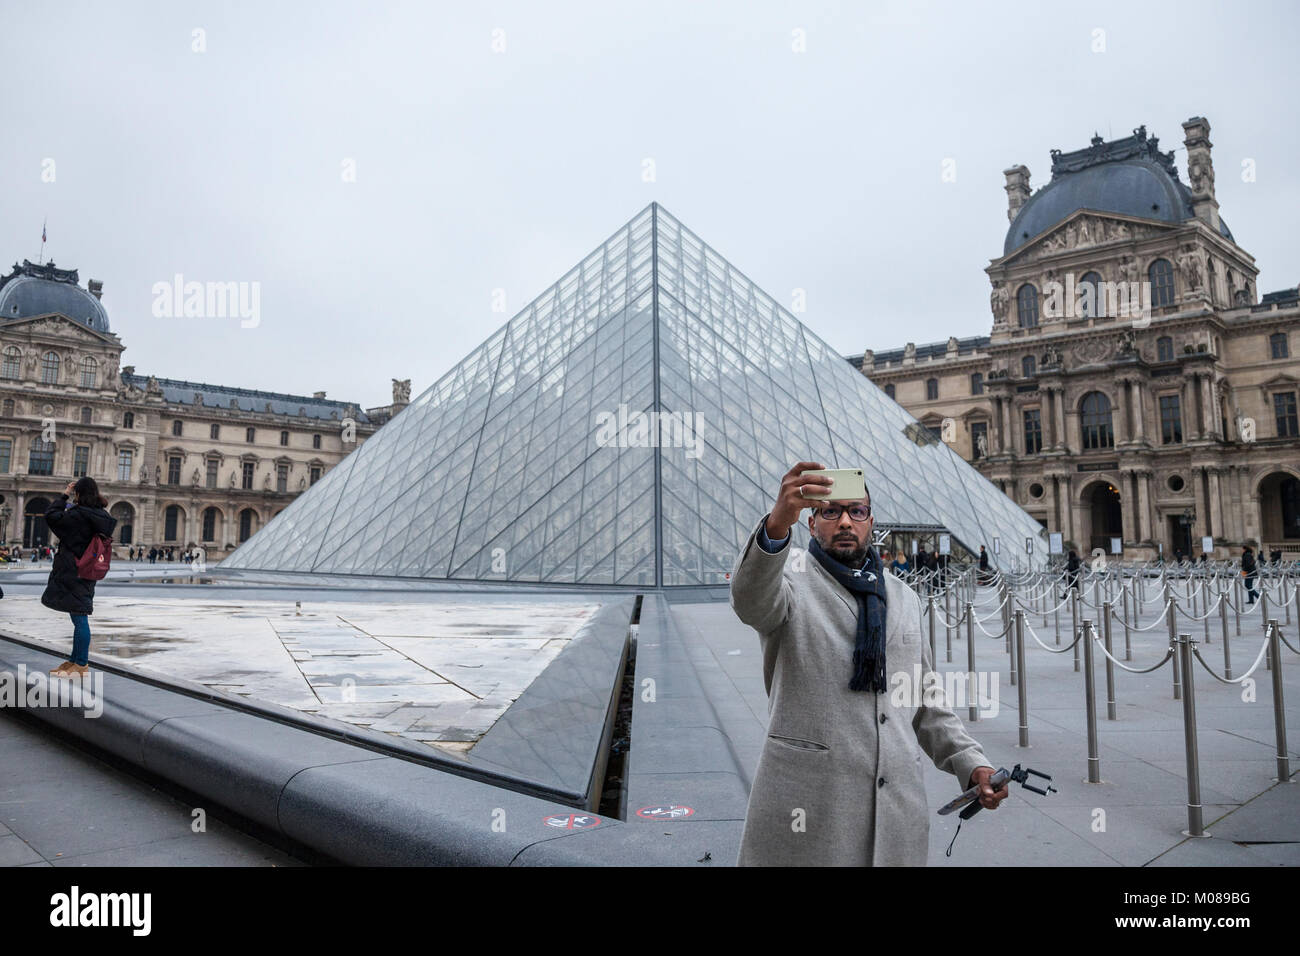 PARIS, FRANCE - DECEMBER 20, 2017: Tourist taking a selfie portrait in front of the Louvre Pyramid. Louvre pyramid - Stock Image